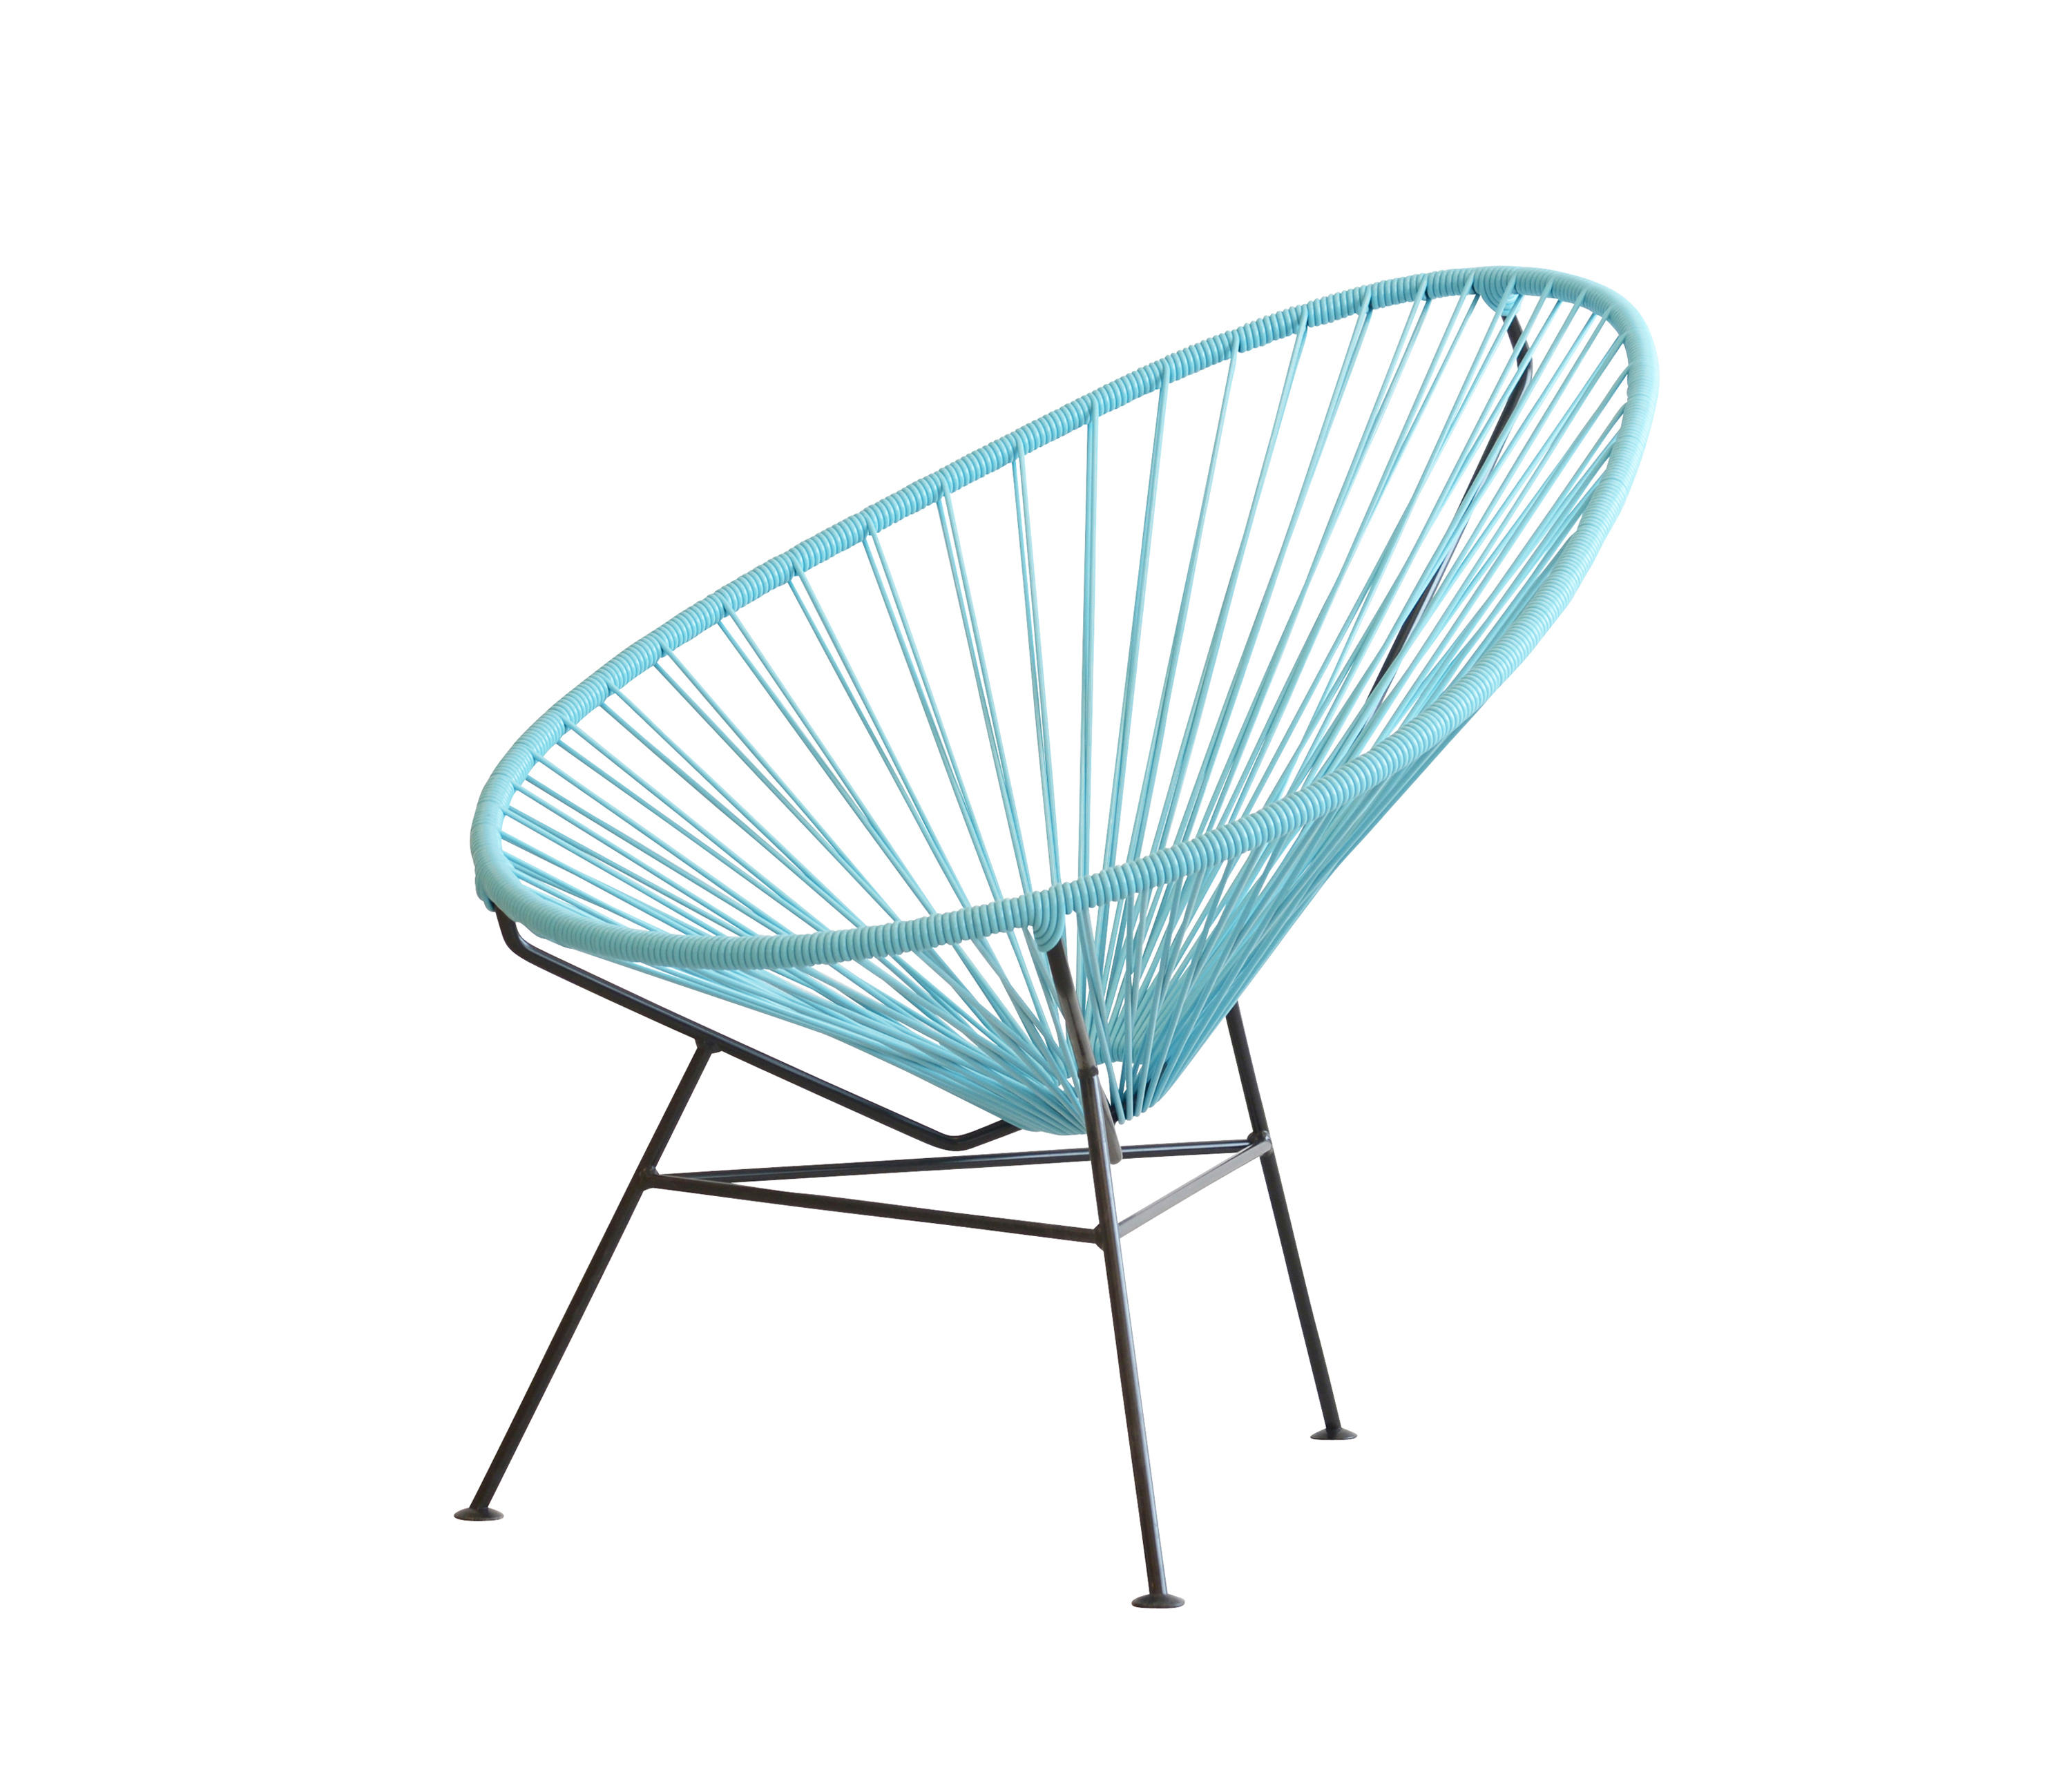 ACAPULCO CHAIR Garden armchairs from OK design Architonic